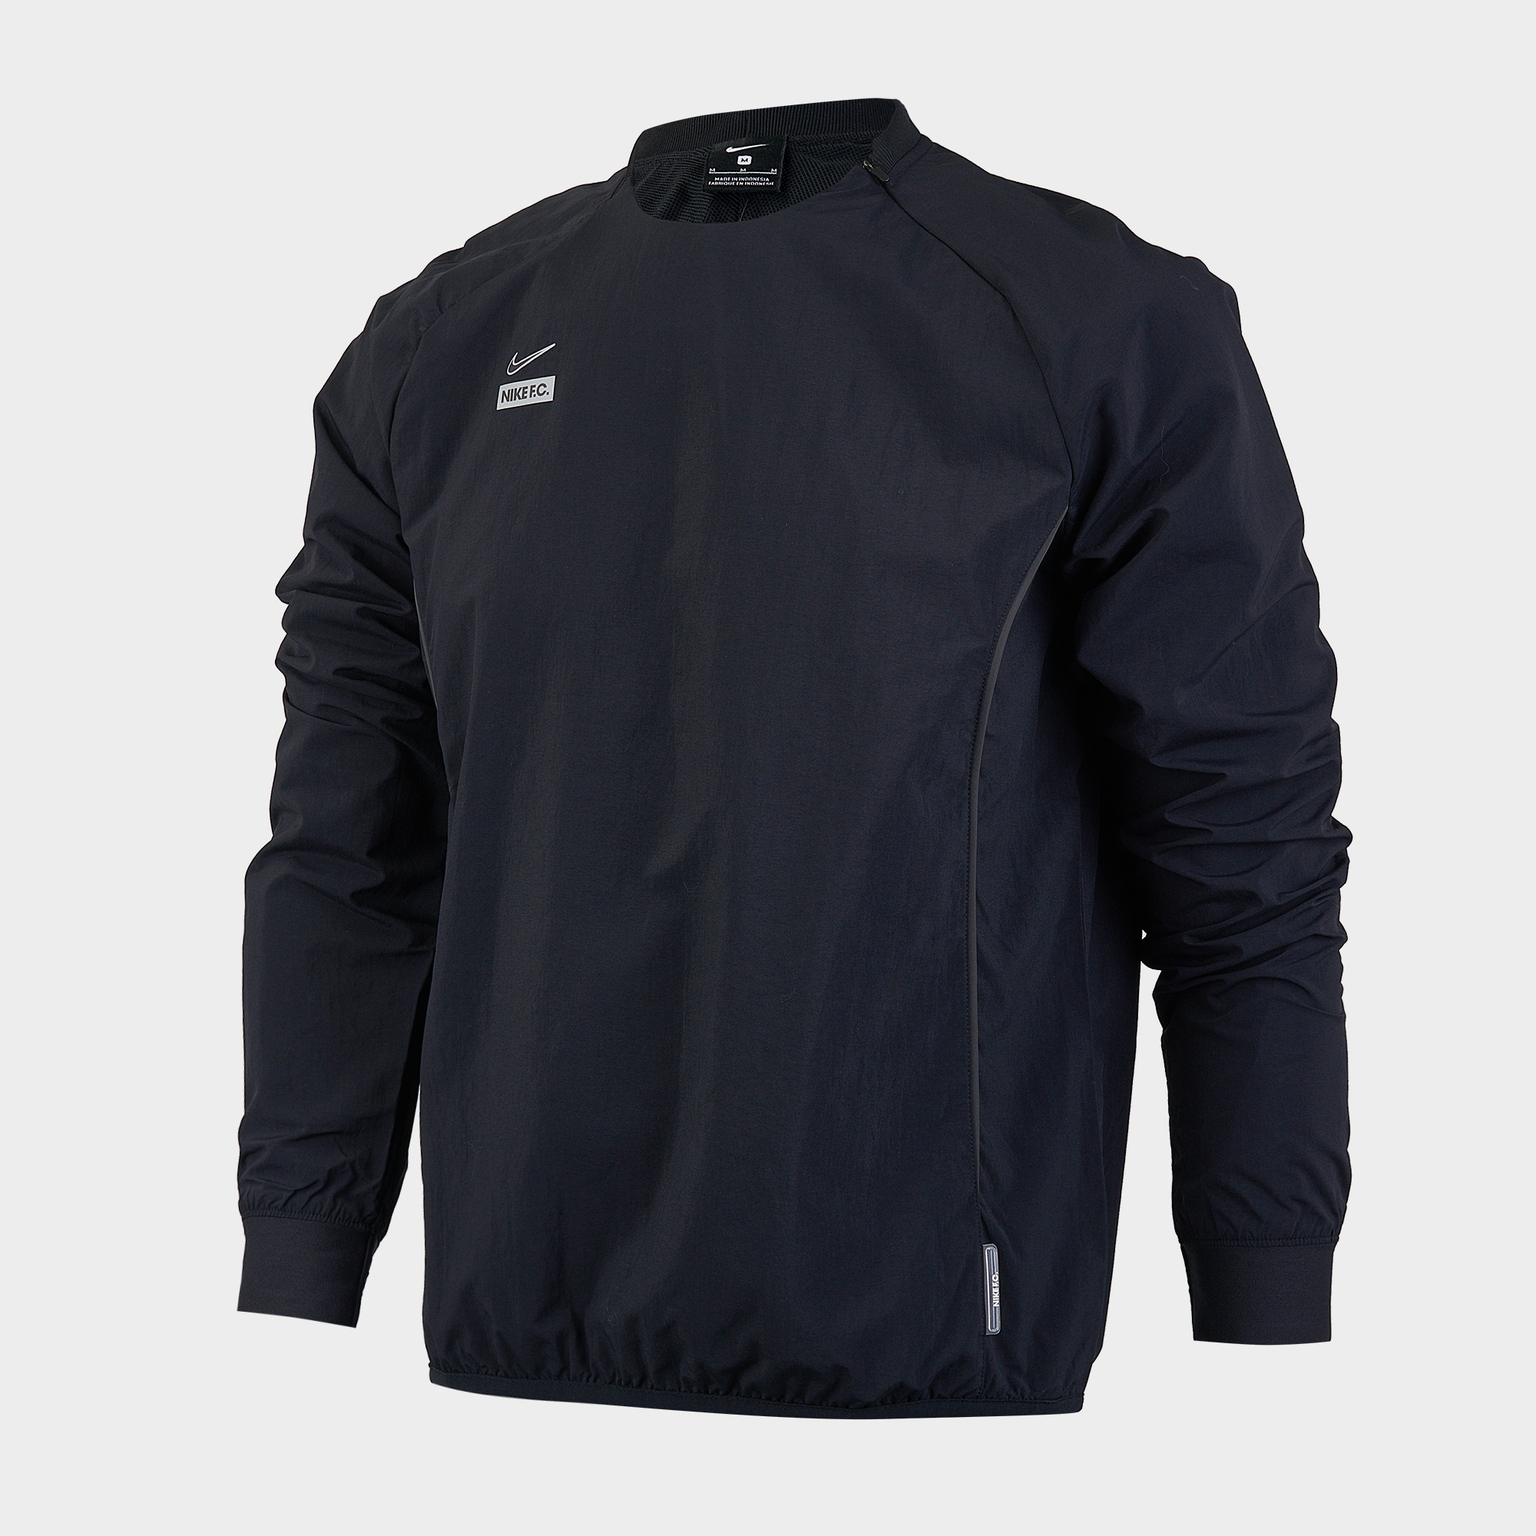 Ветровка Nike F.C. Midlayer Crew CT2516-010 ветровка nike nike ni464emfnbn9